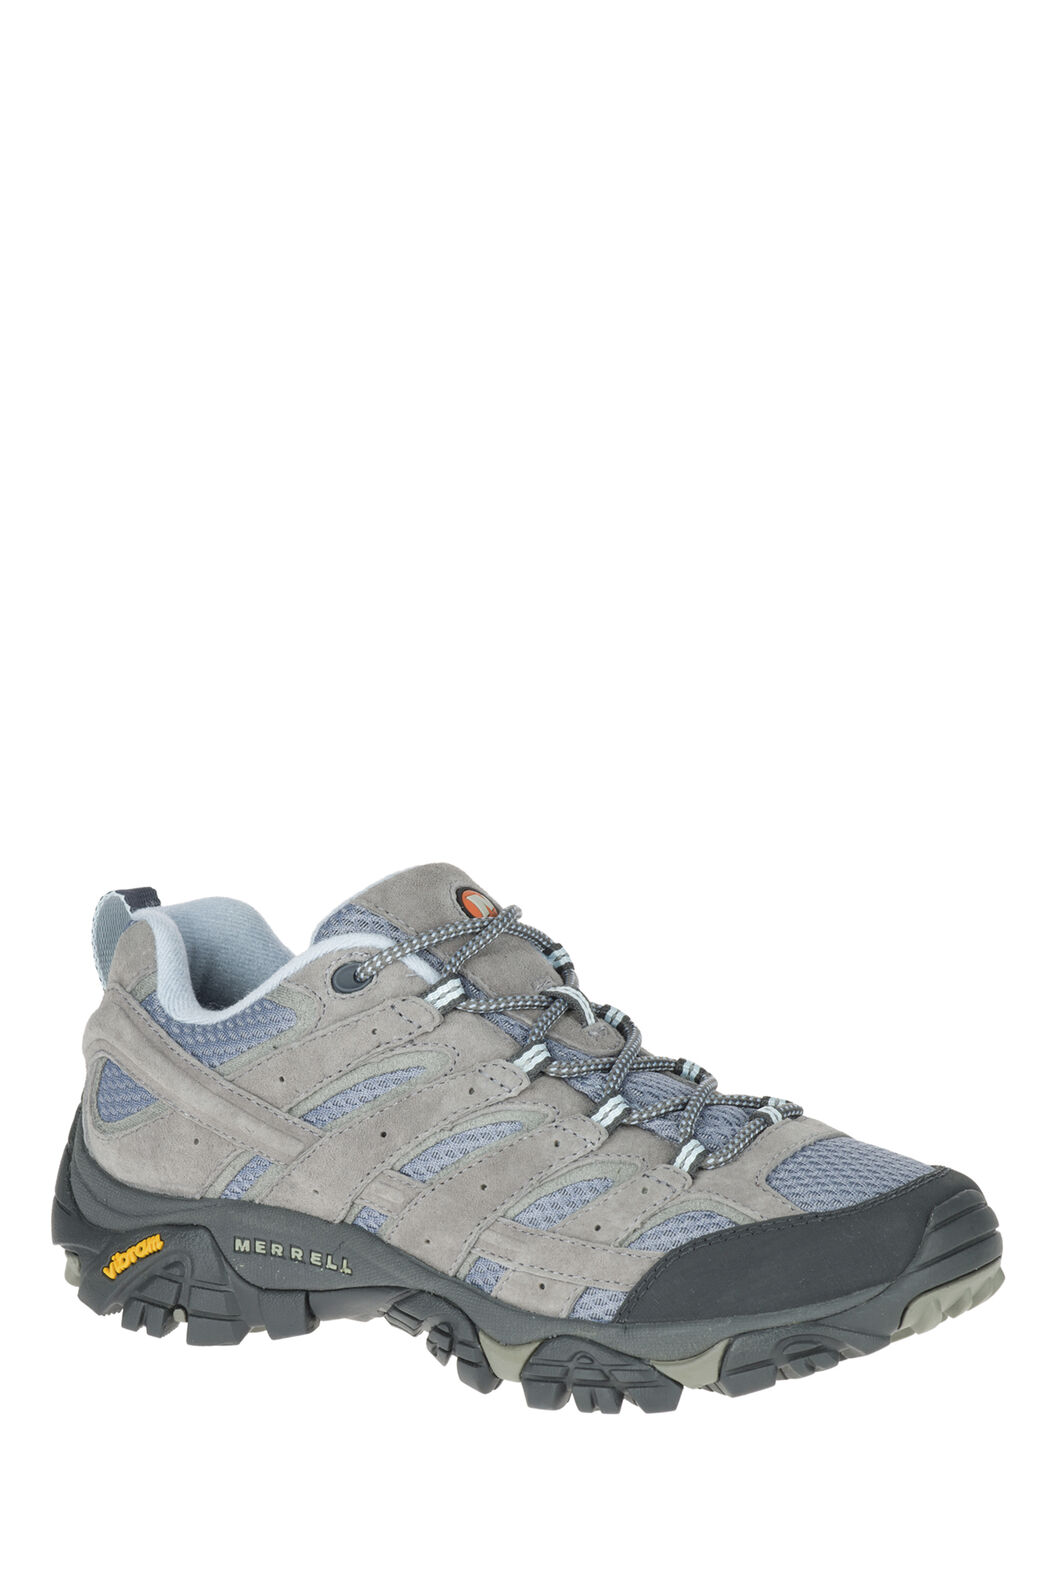 Merrell Moab 2 Ventilator Shoes — Women's, Smoke, hi-res